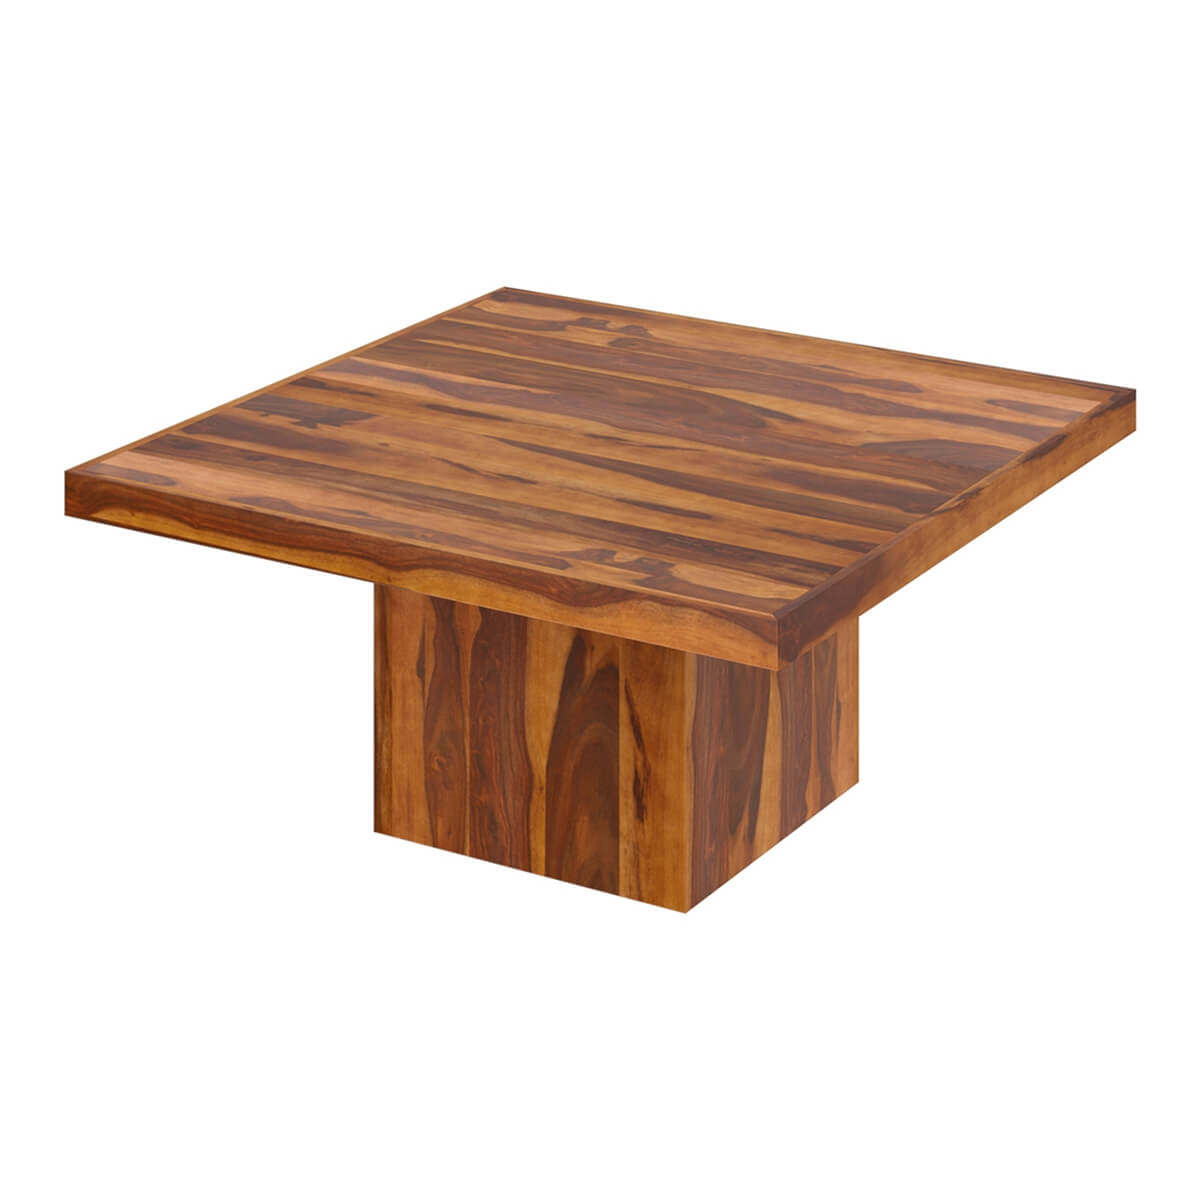 Brocton Solid Wood Modern Rustic Block Pedestal Square Dining Table